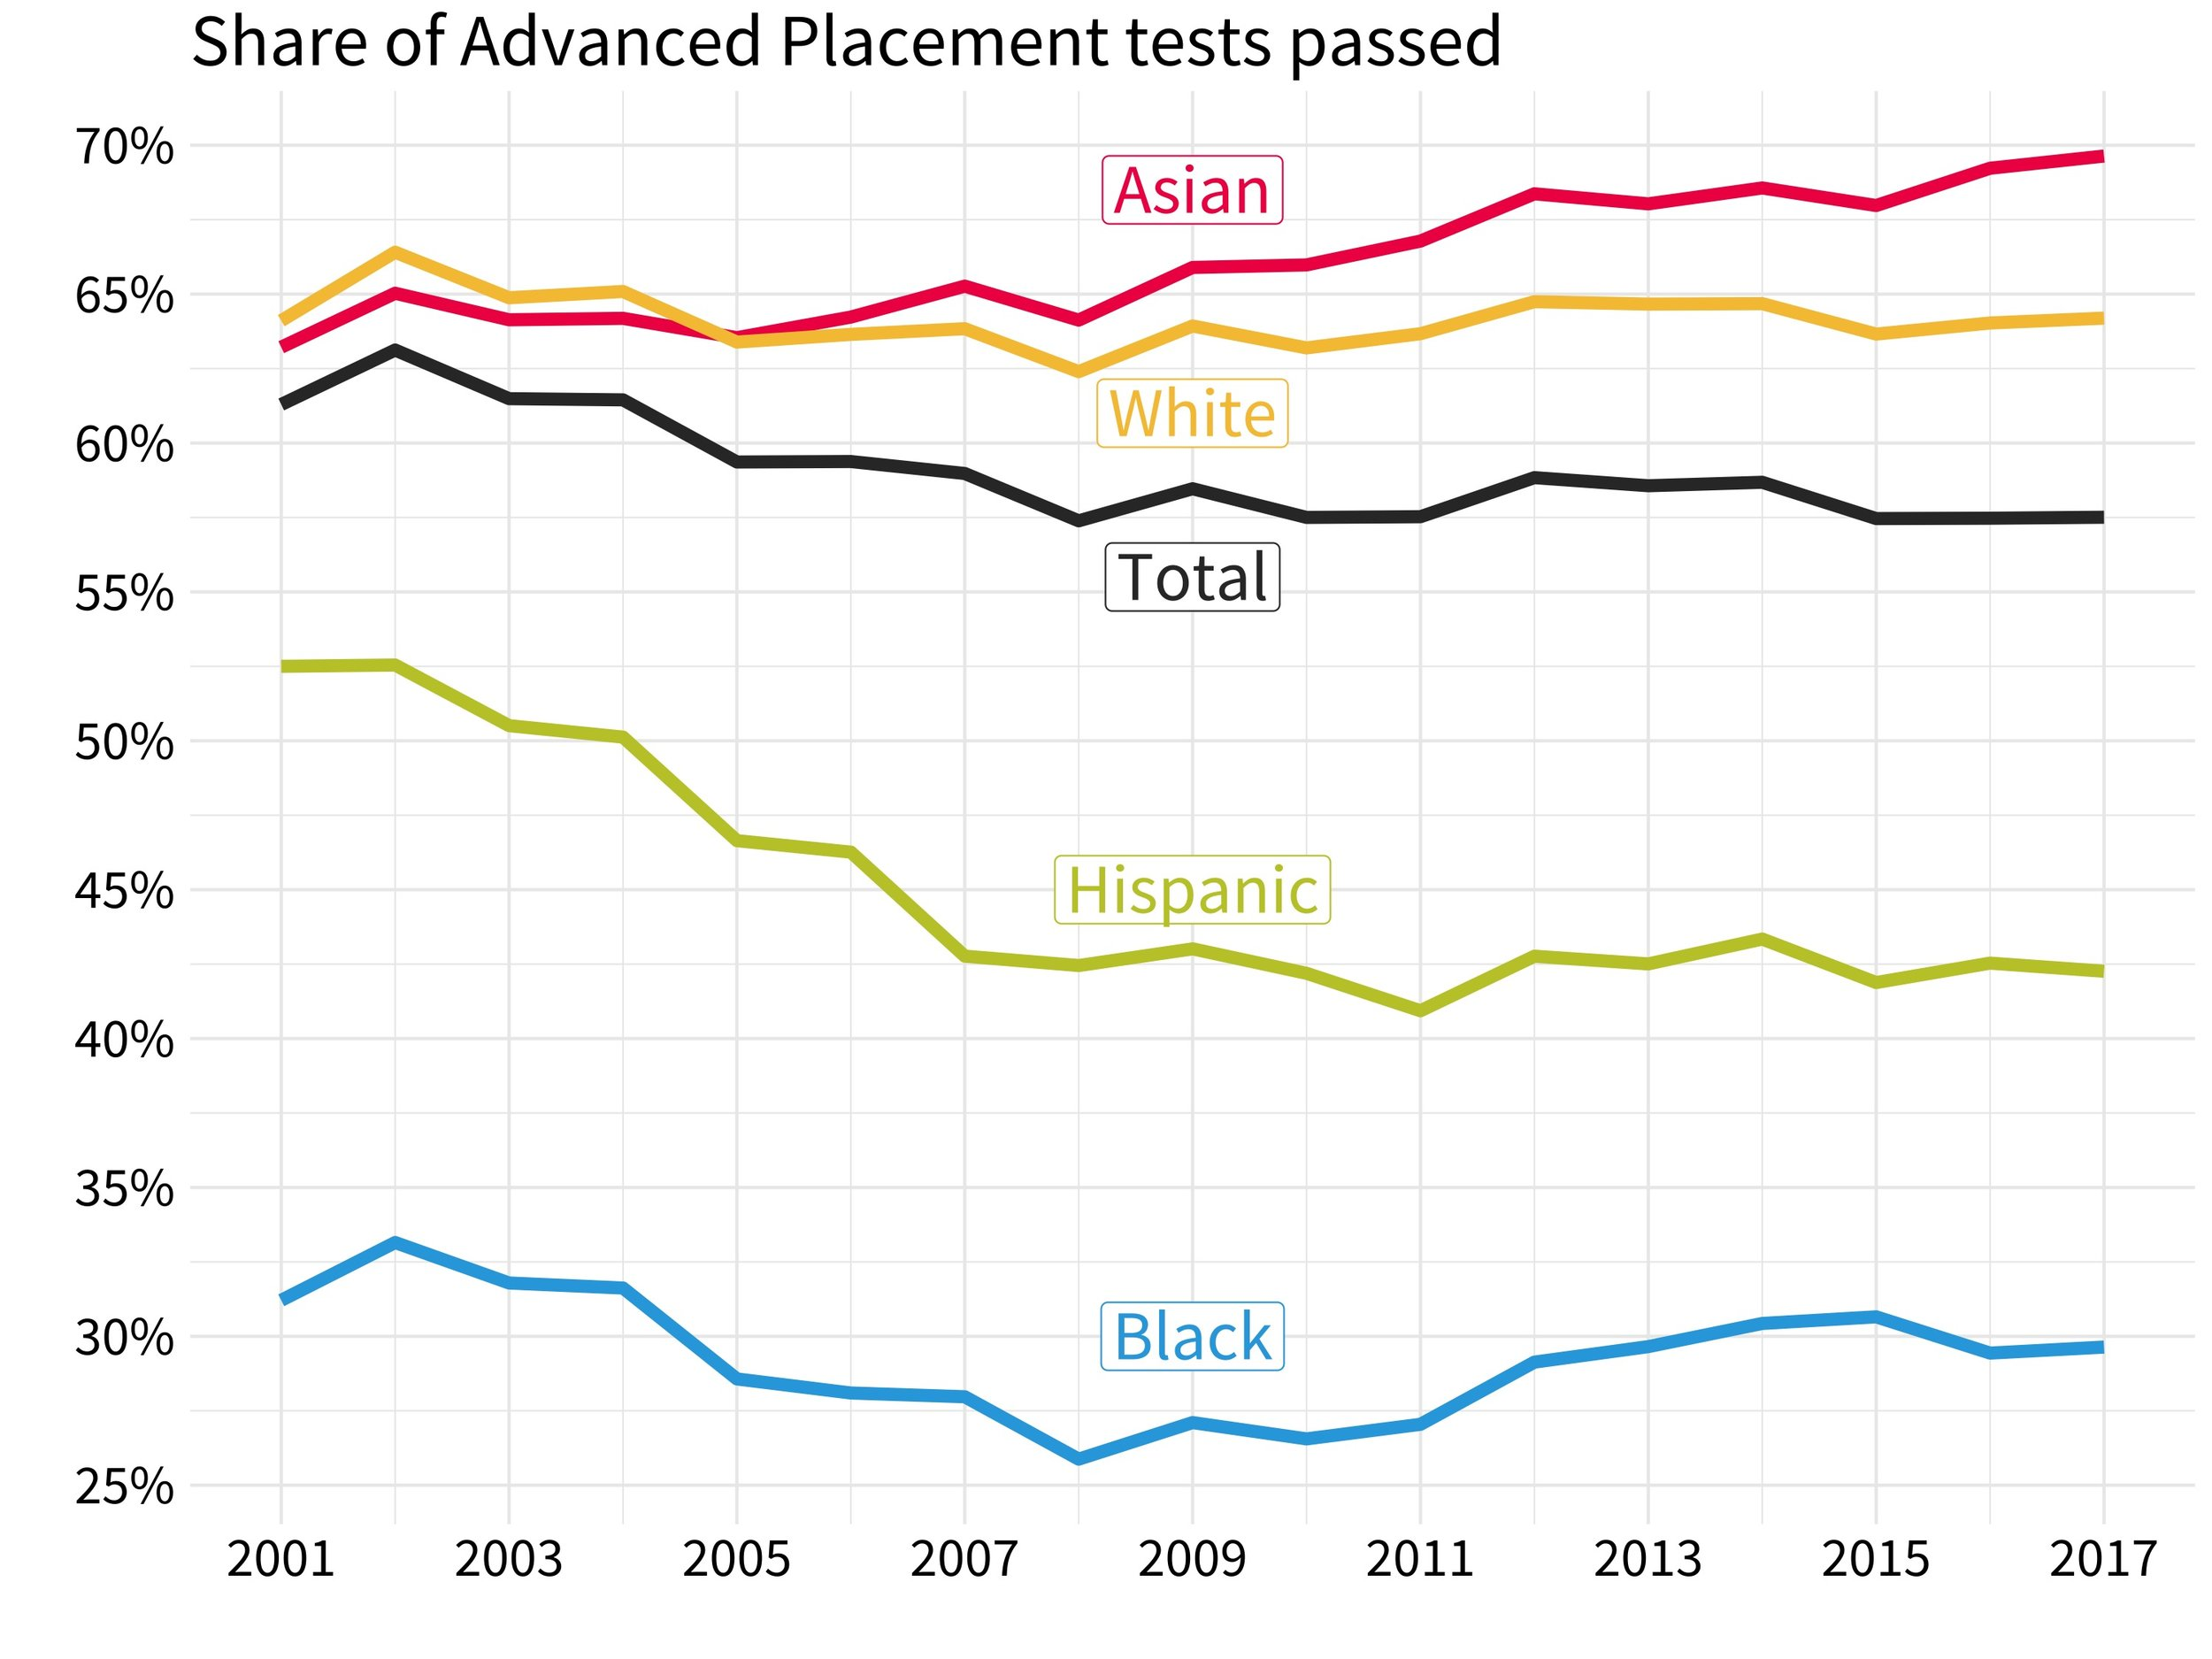 AP Exam Passrates - There's a racial gap when it comes to scoring above a 3 on AP exams. I downloaded 17 years of data from the College Board, analyzed pass rates in R, and generated my own graph for this Chalkbeat story. (Code available on GitHub)